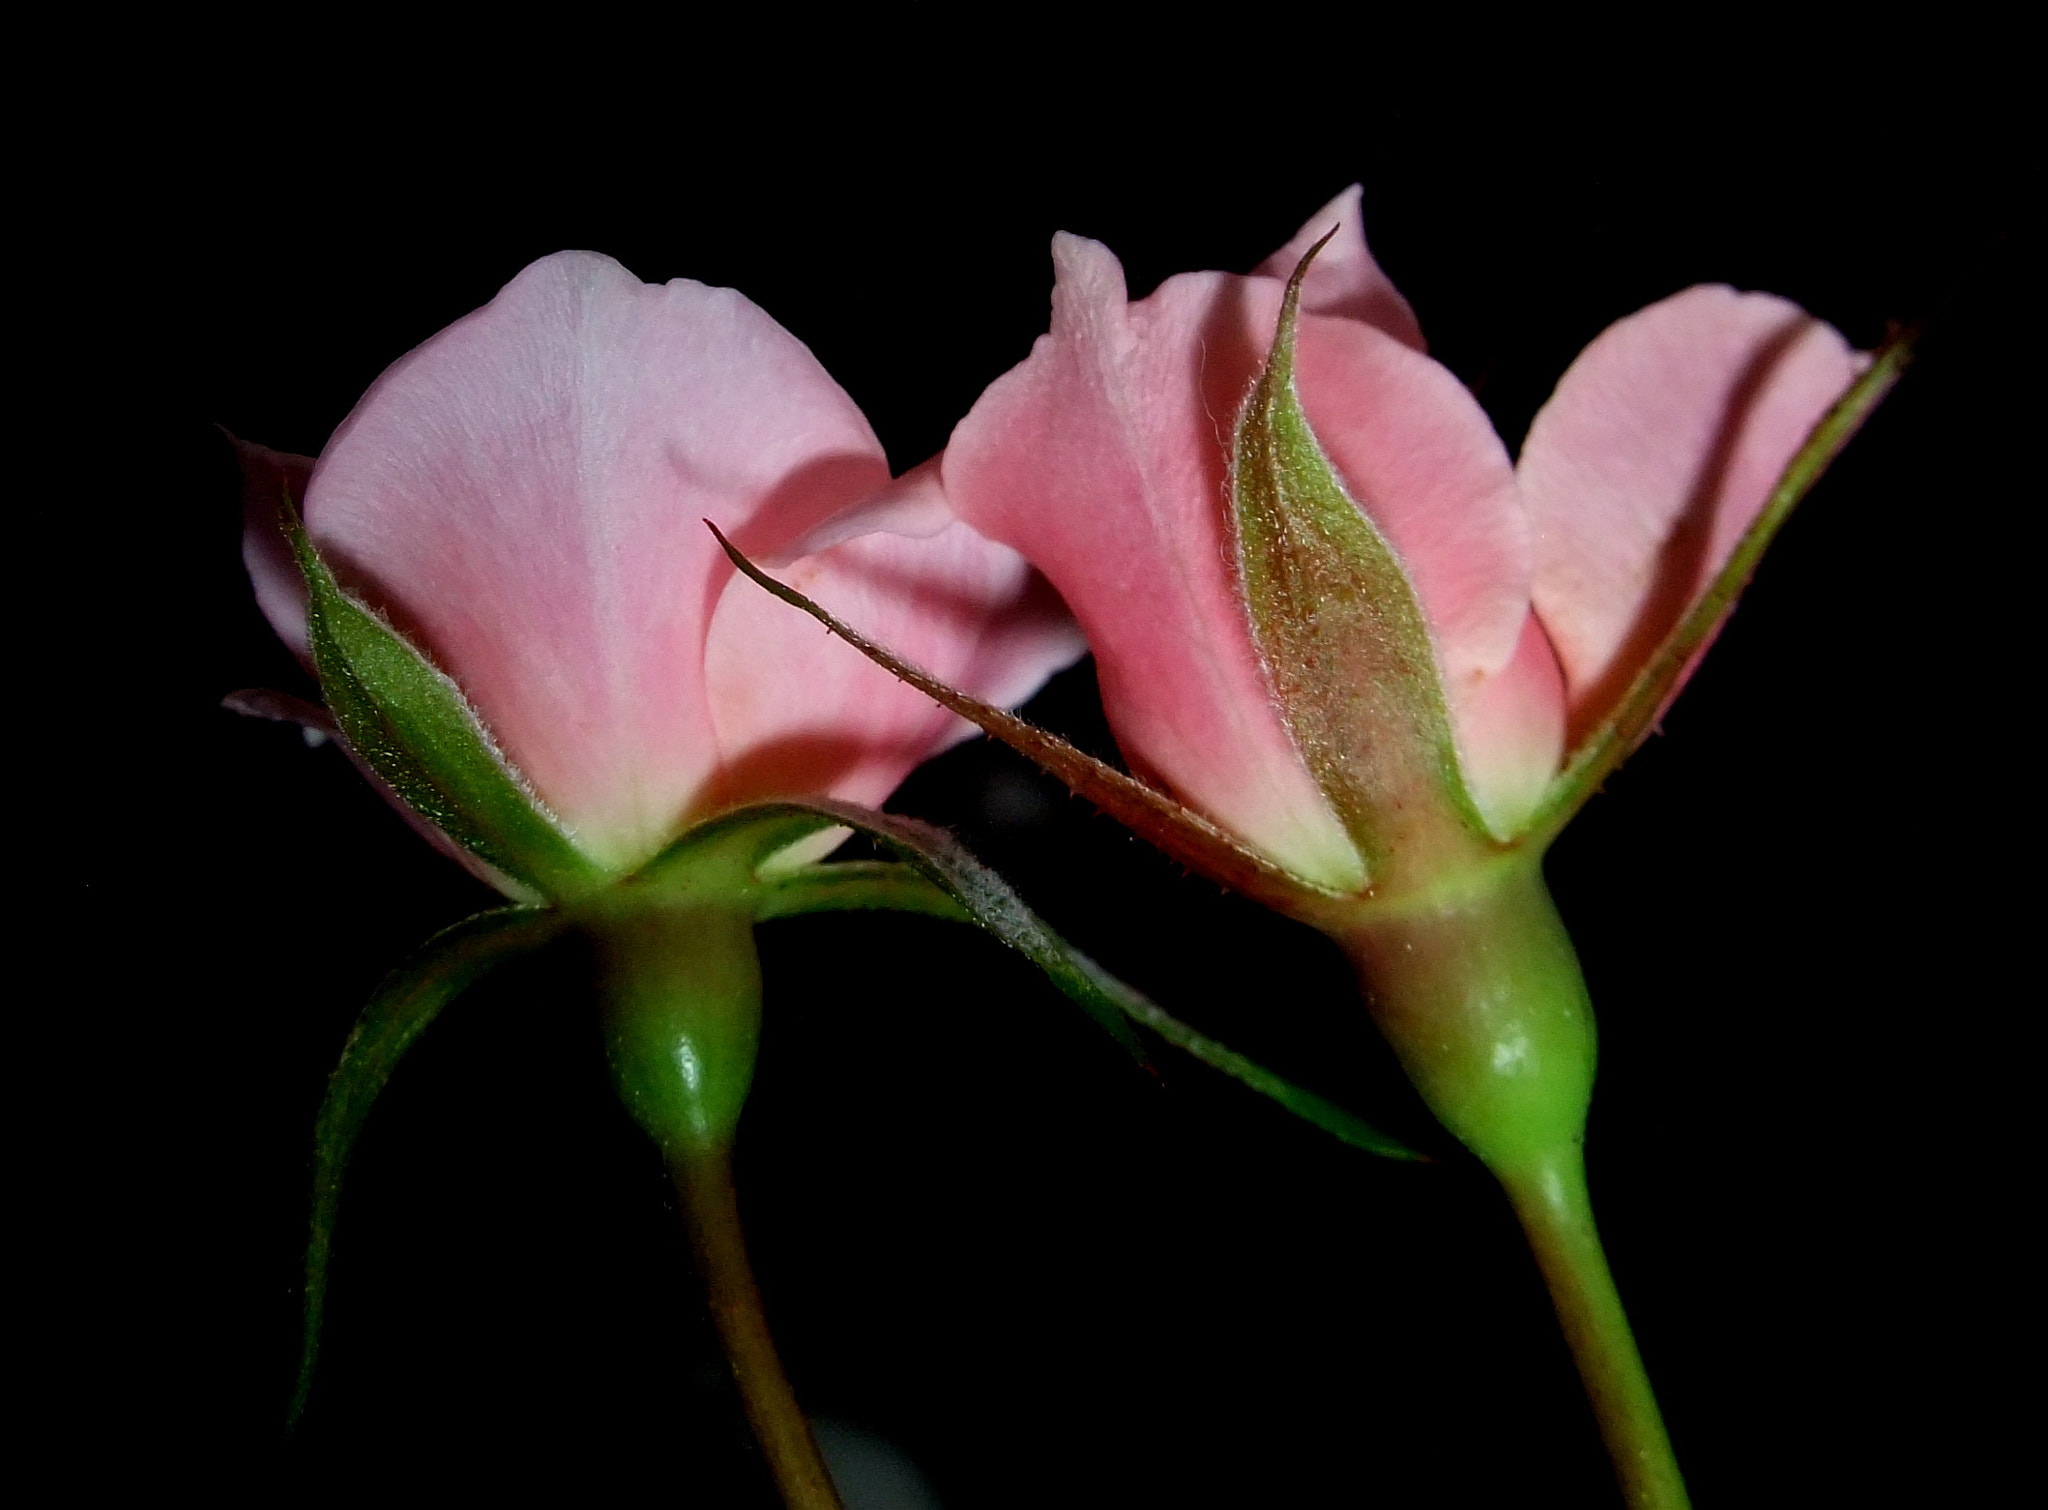 Photograph Pink roses by Nazia di on 500px